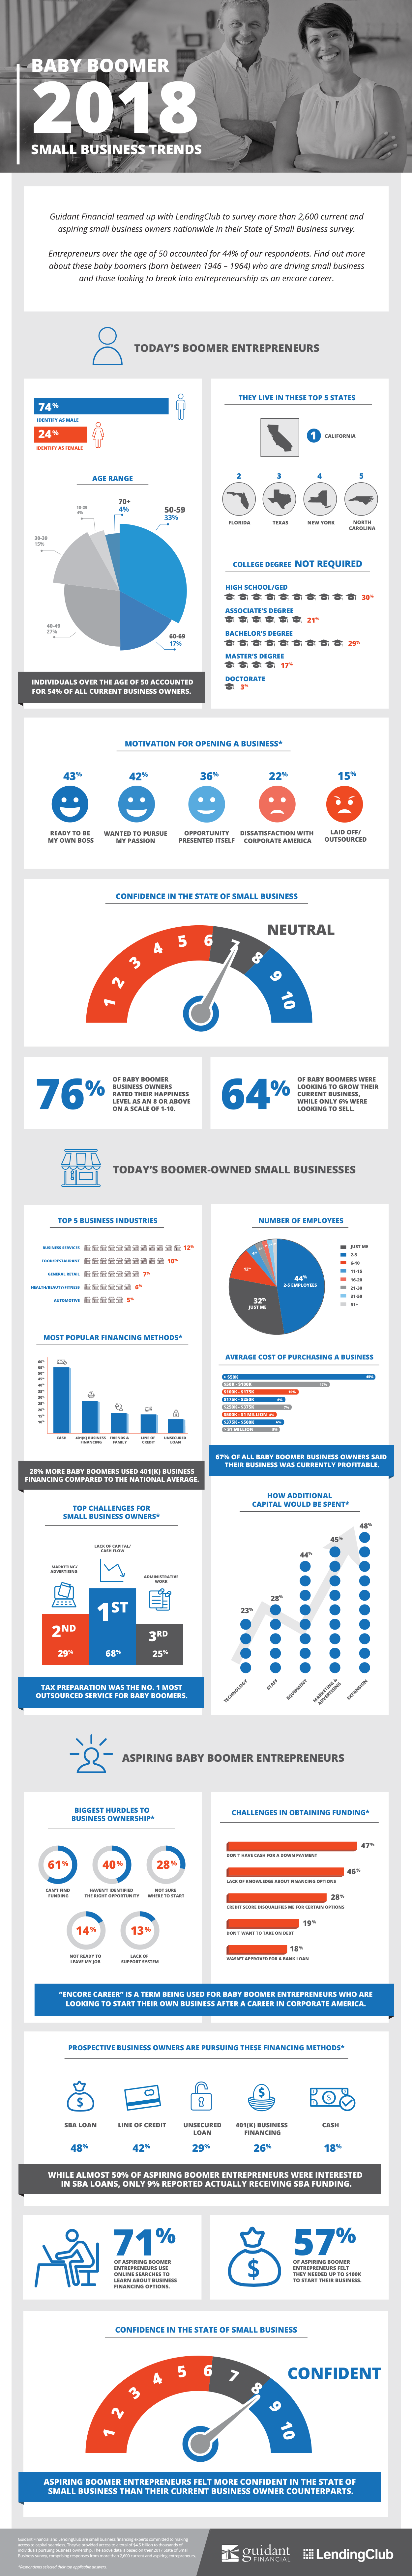 Infographic] 2018 Baby Boomers Small Business Trends